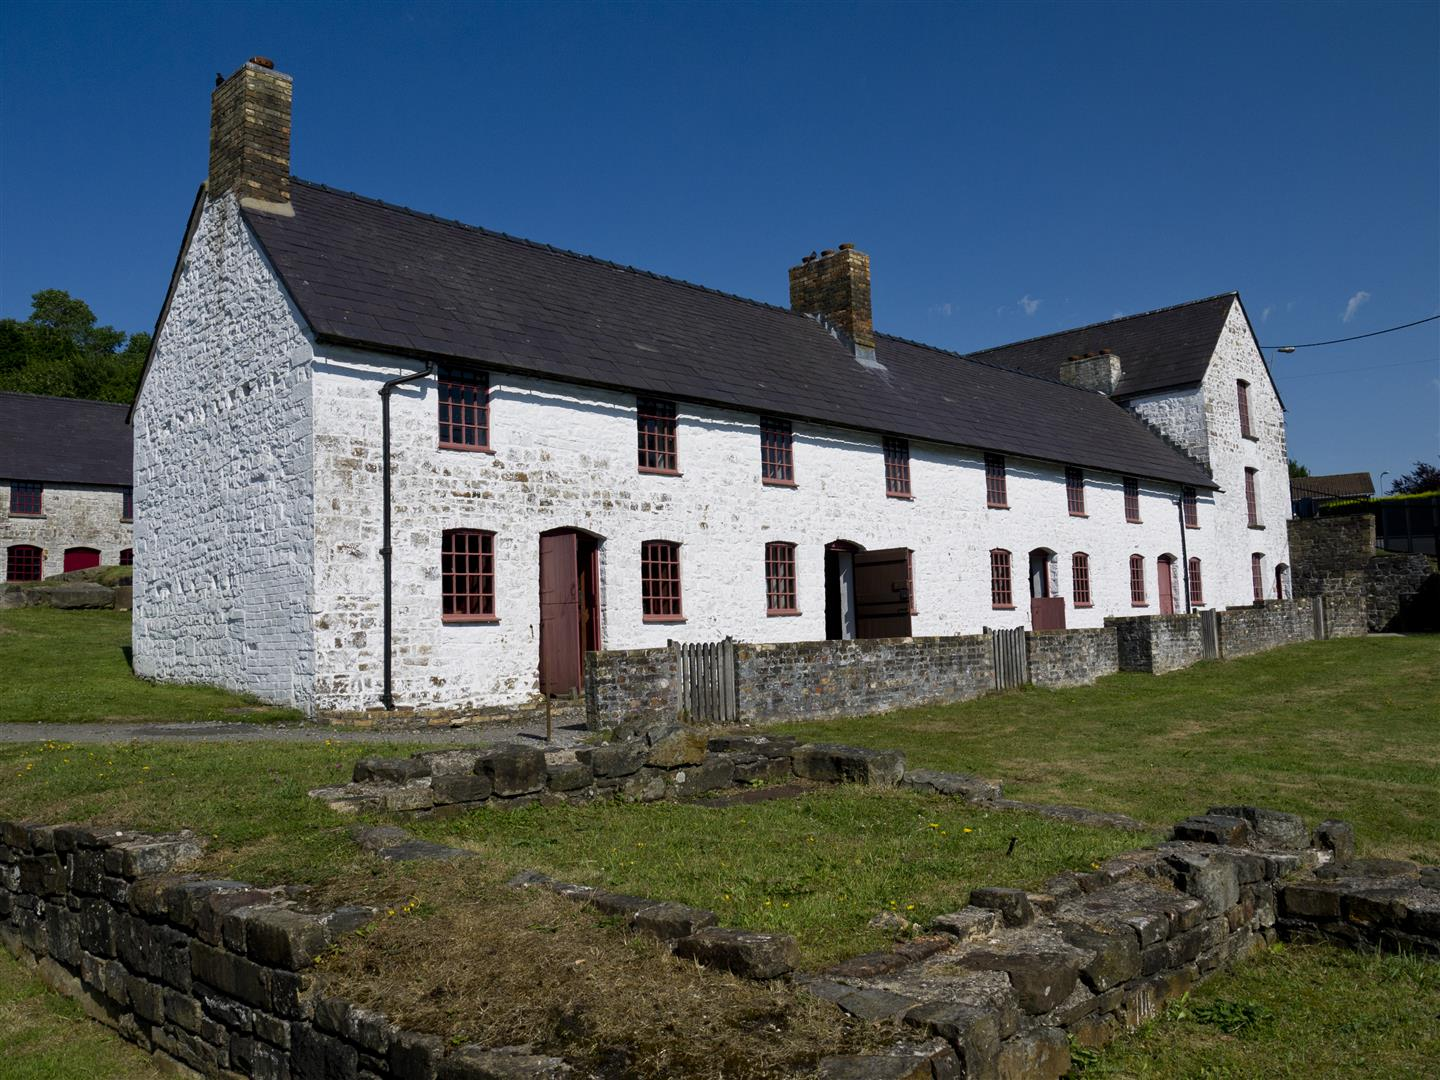 Mining Cottages at Blaenavon Ironworks